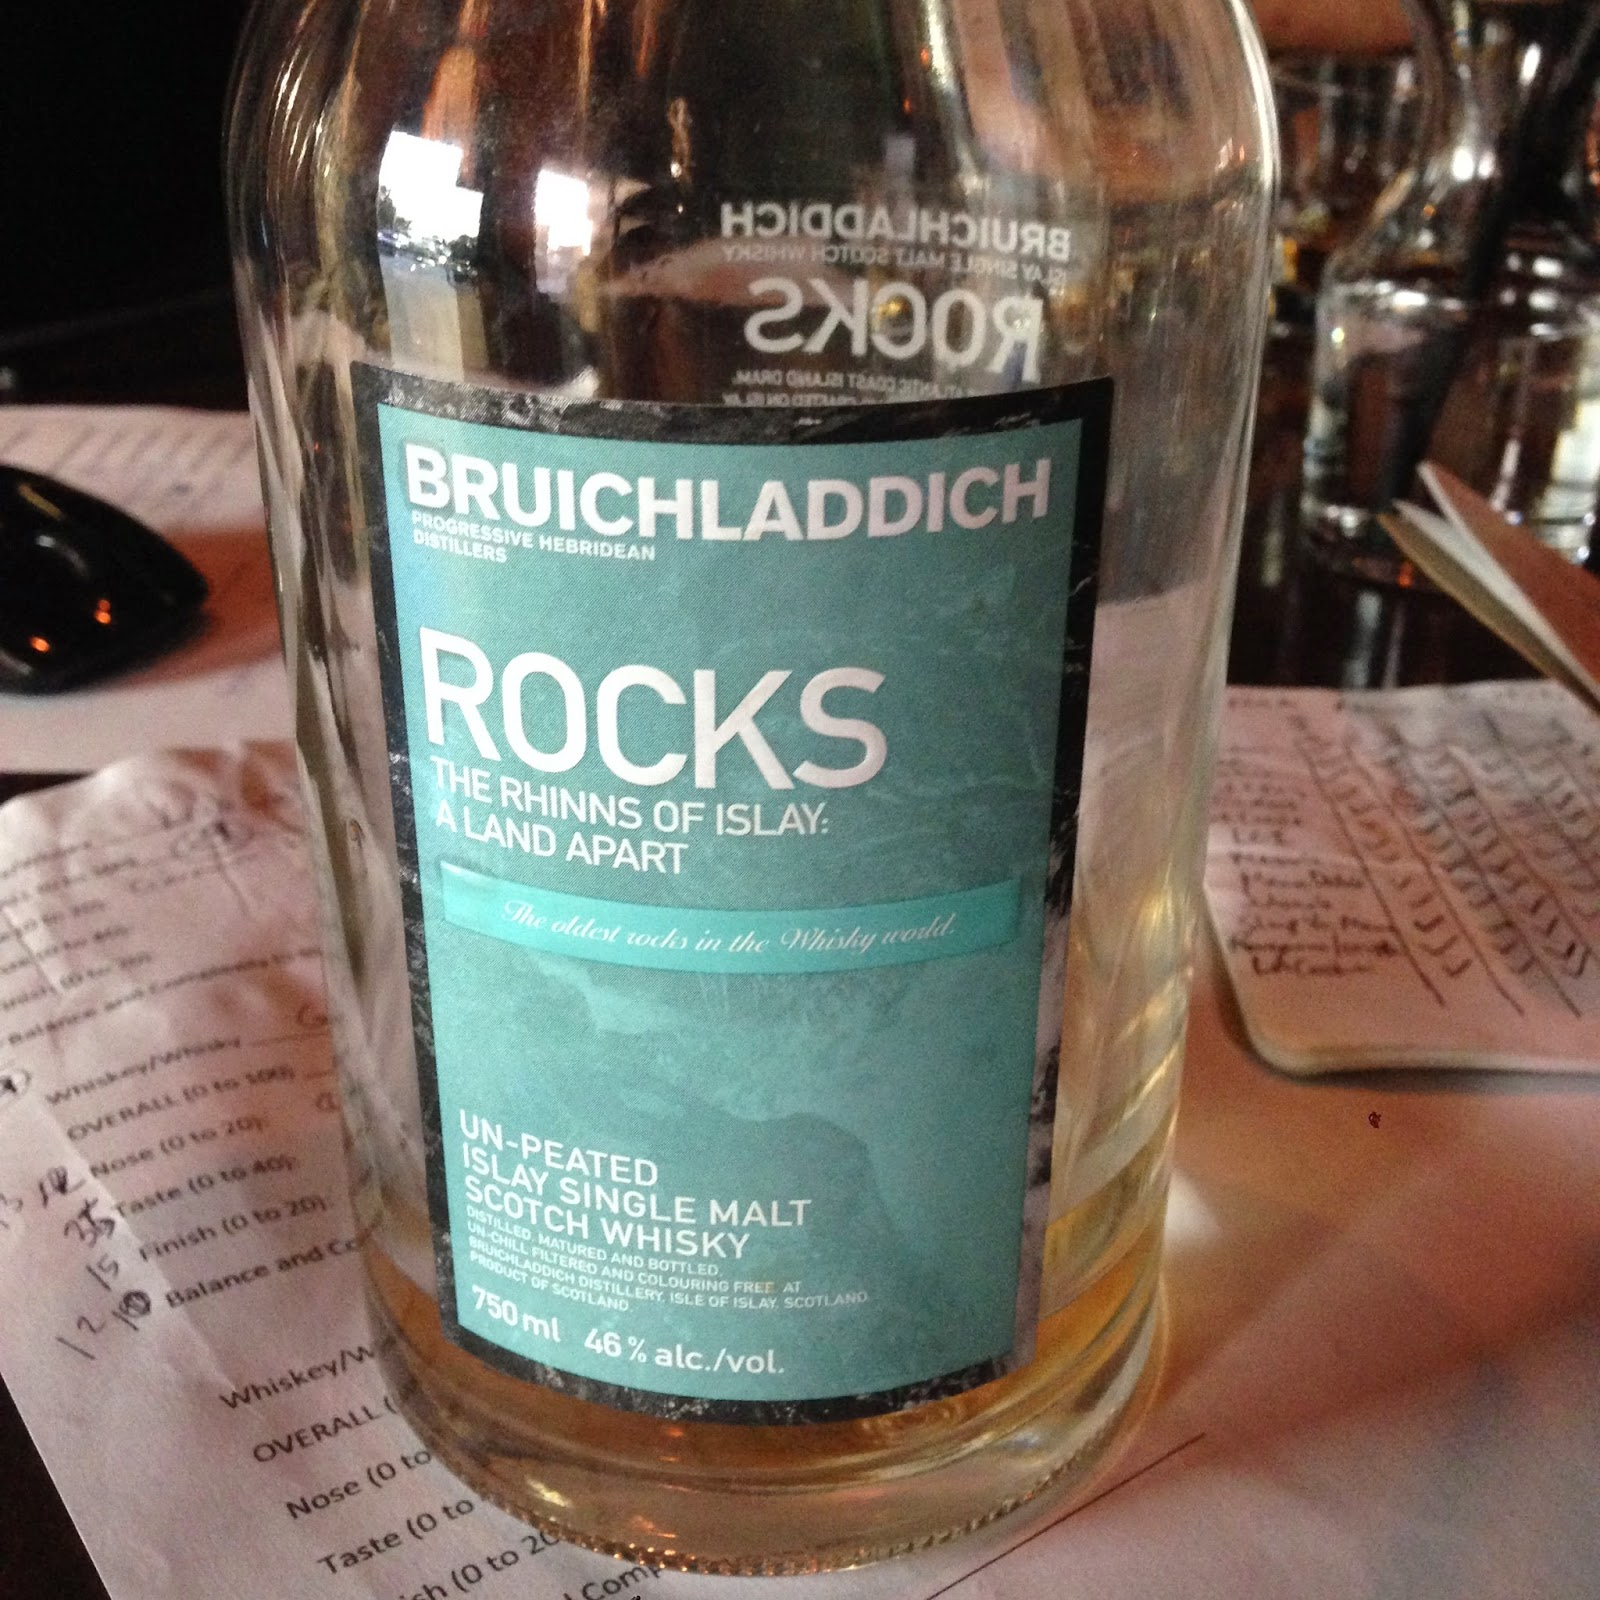 Bruichladdich Rocks Scotch Whisky